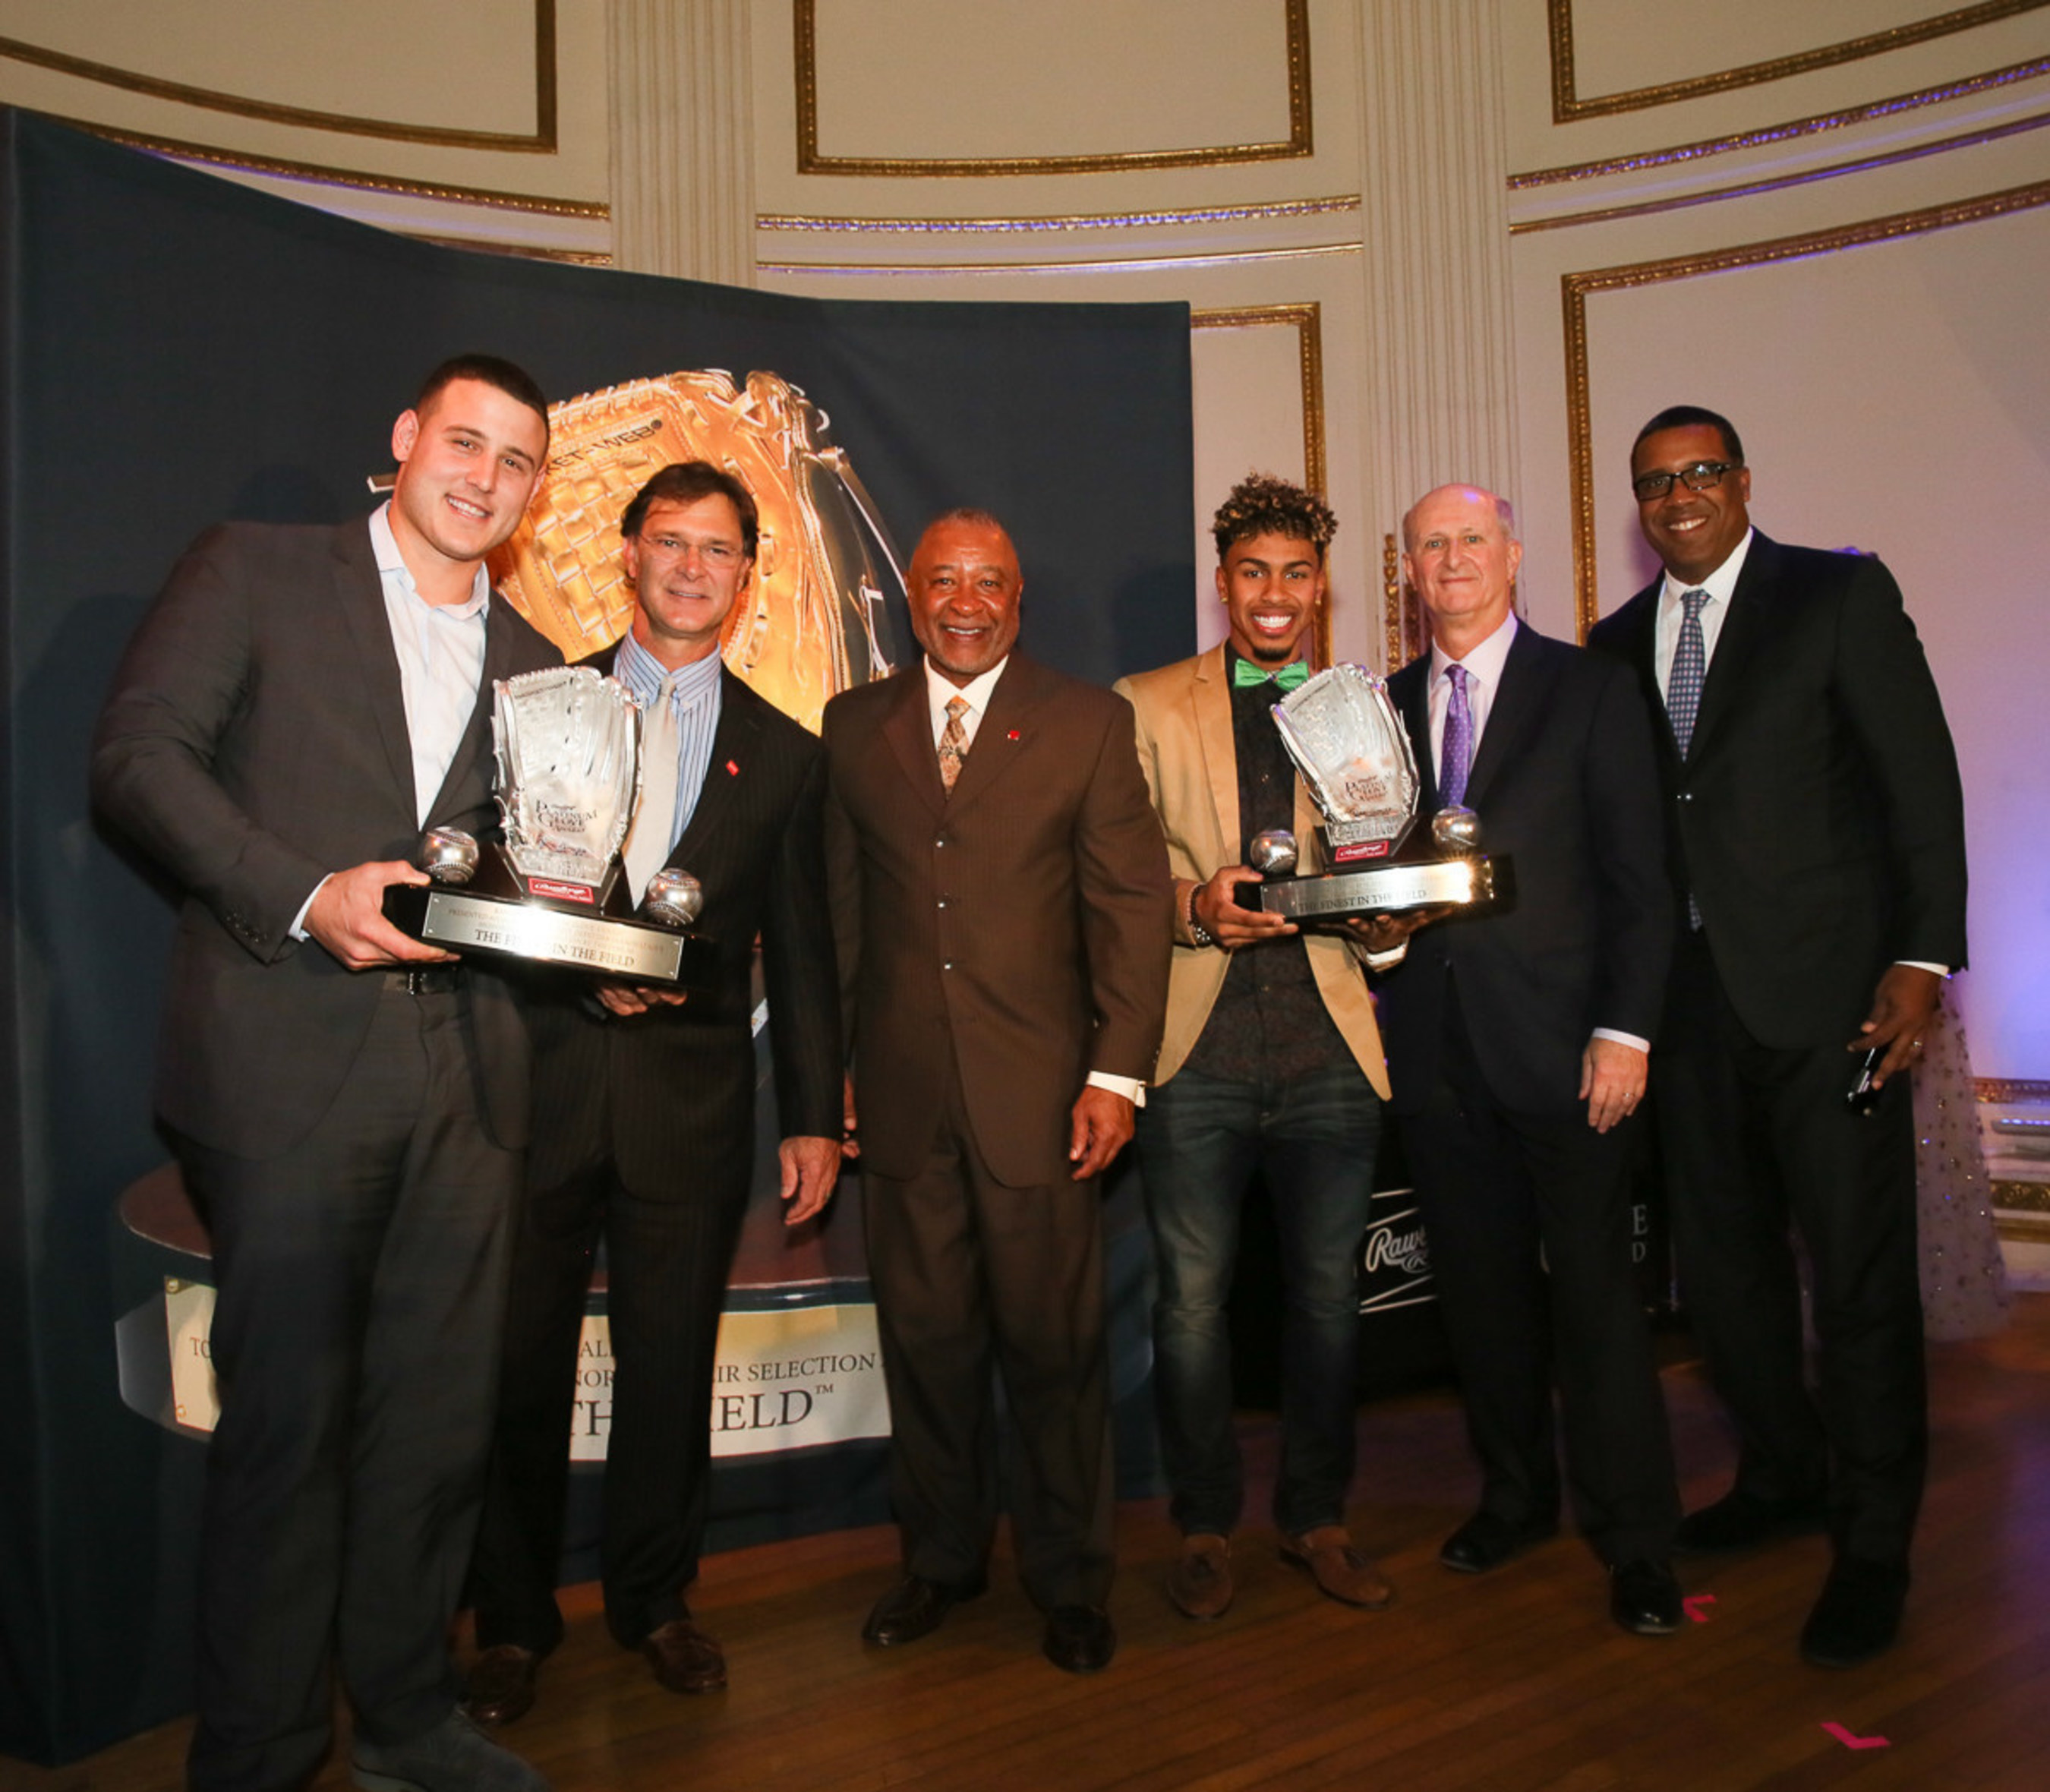 2016 Rawlings Platinum Glove Award Winners Anthony Rizzo and Francisco Lindor.